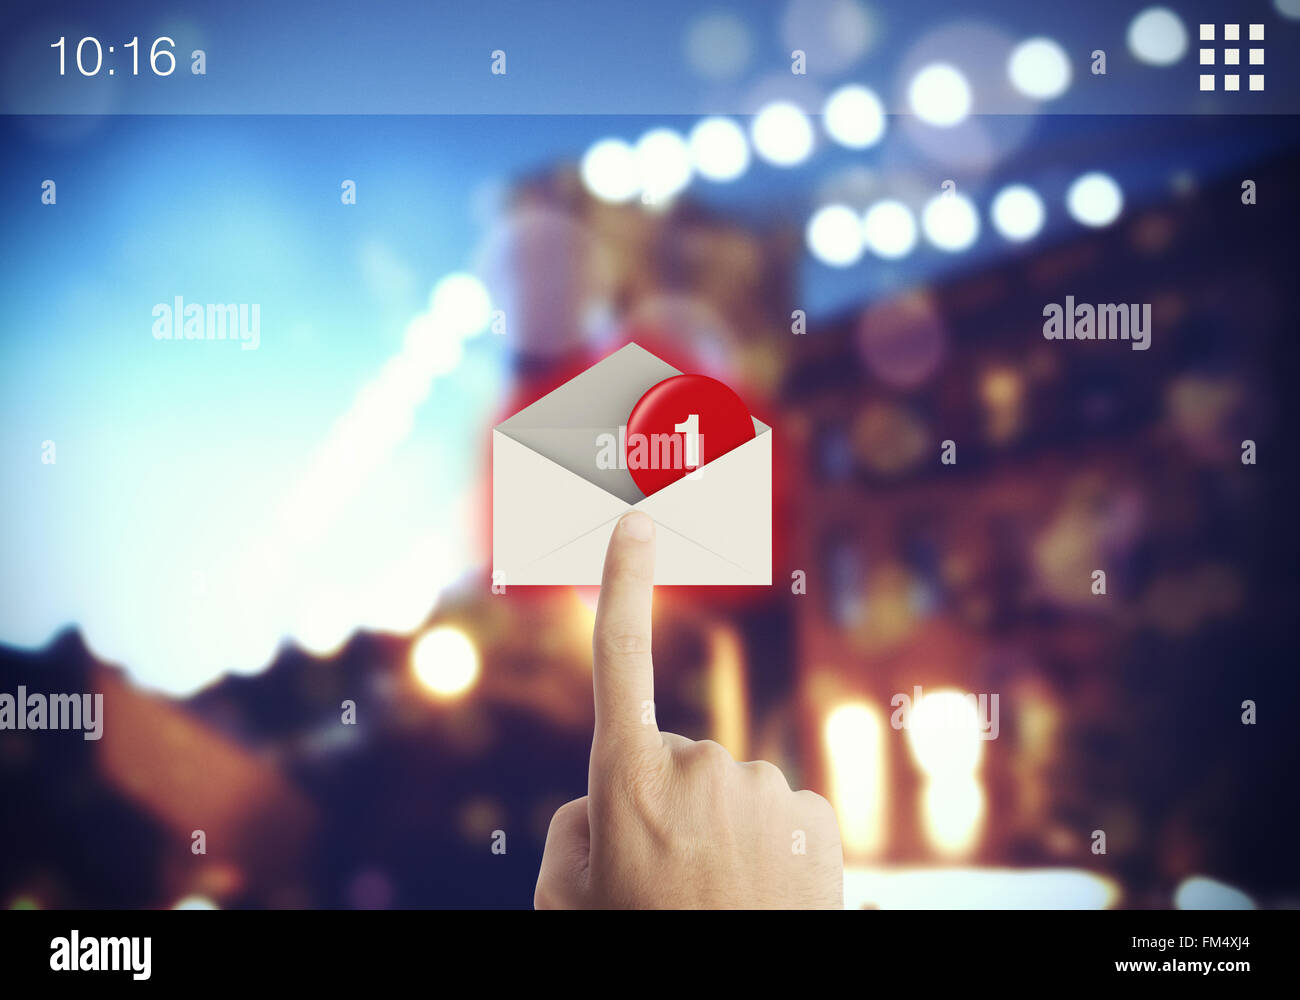 Email on screen - Stock Image